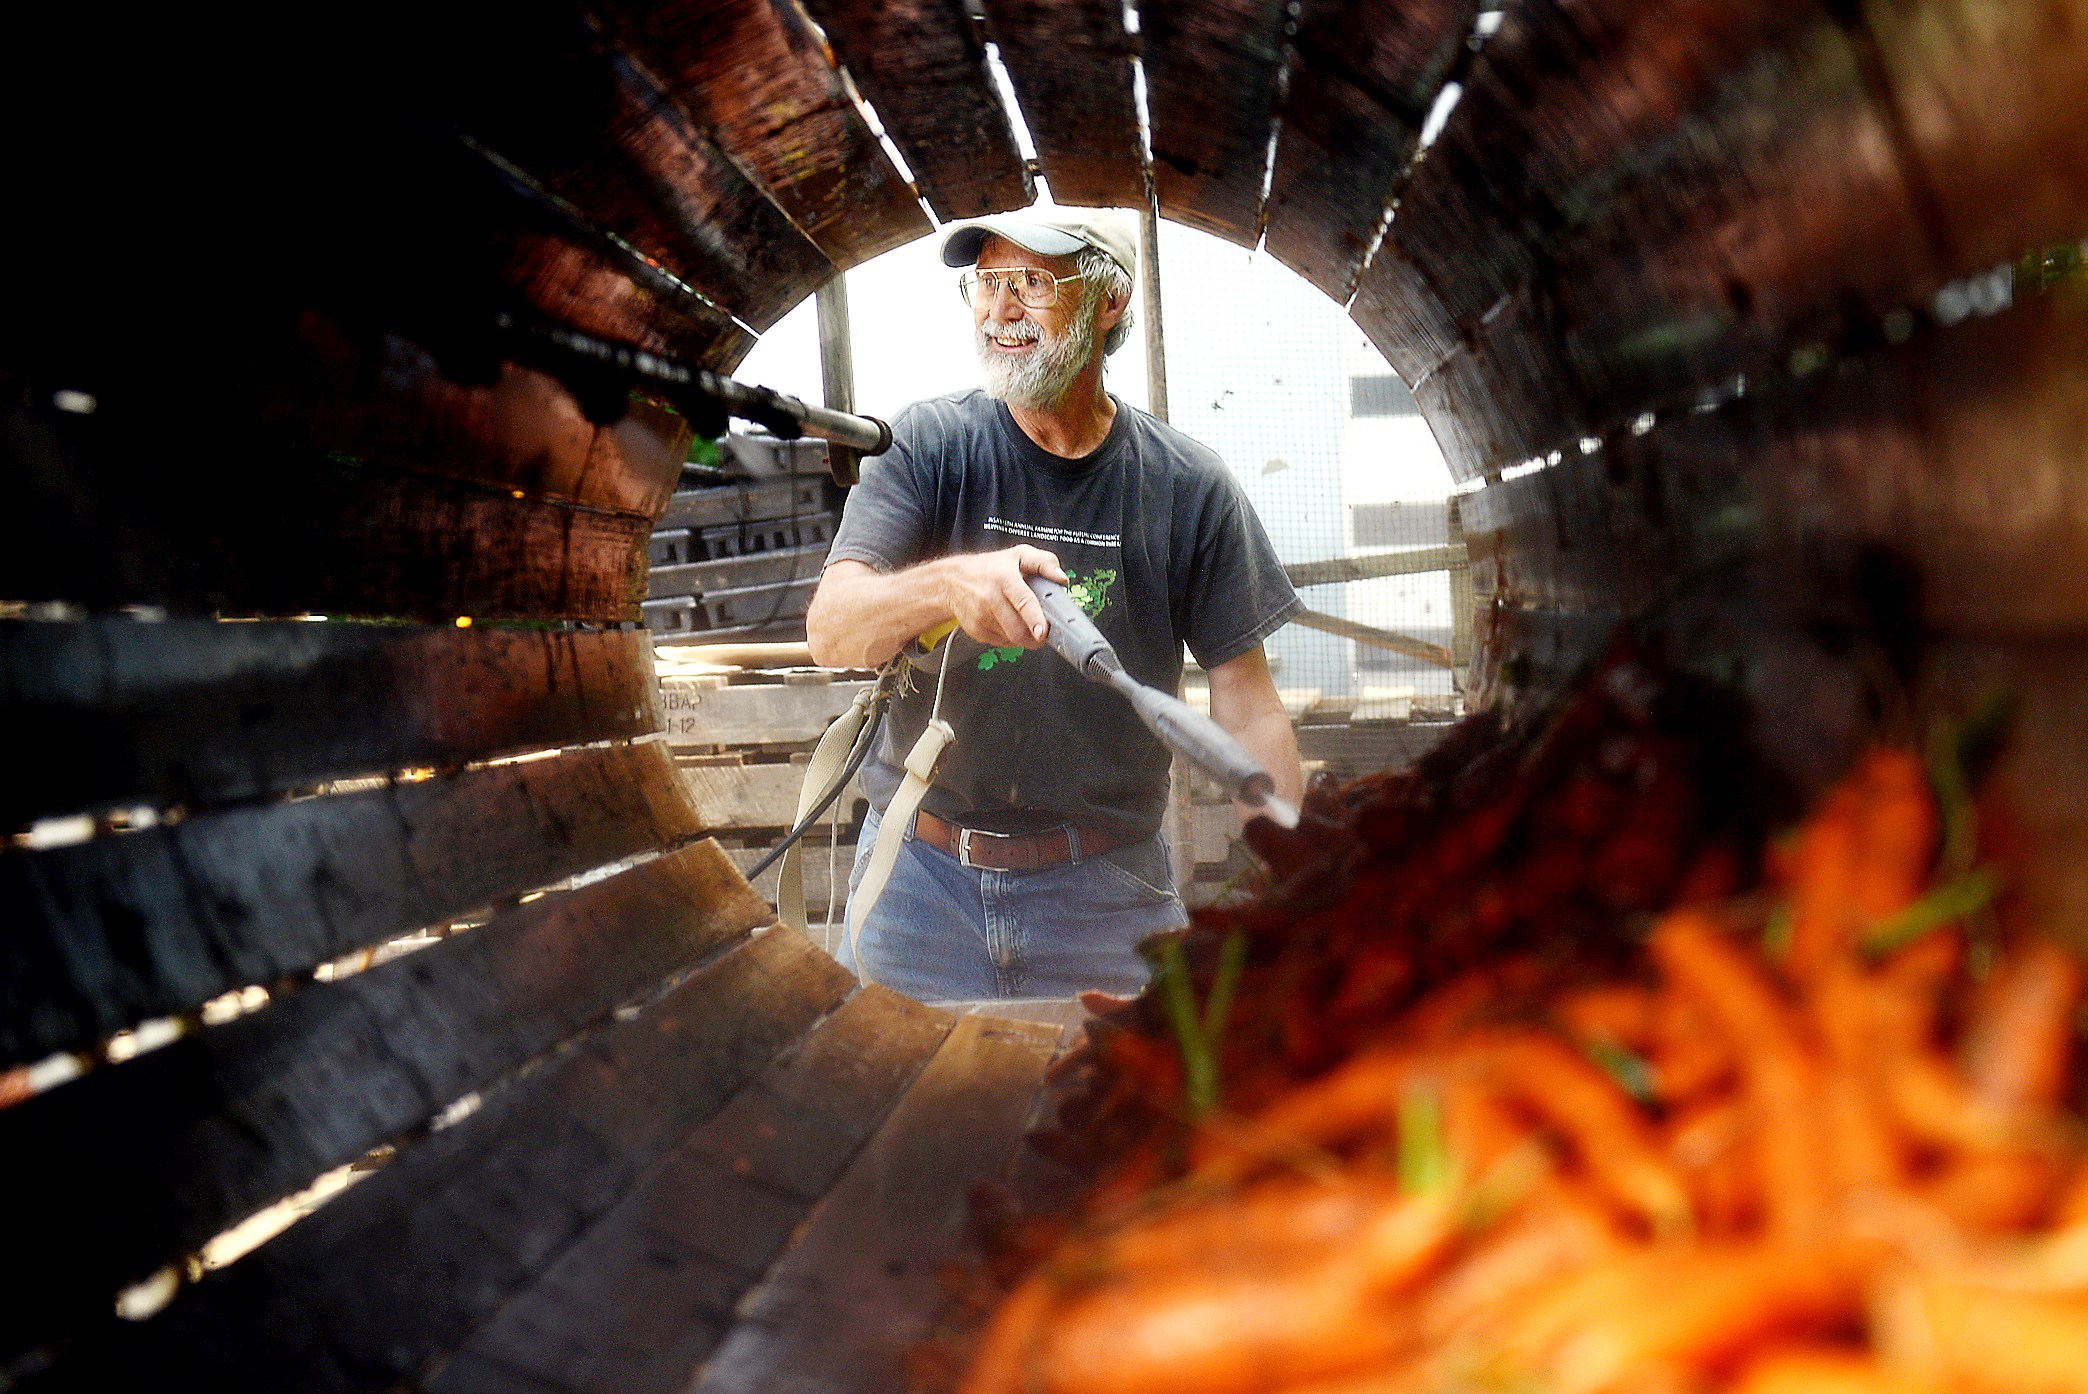 Don Kretschmann, owner of Kretschmann Family Organic Farm, cleans carrots July 21 at his farm in Rochester.